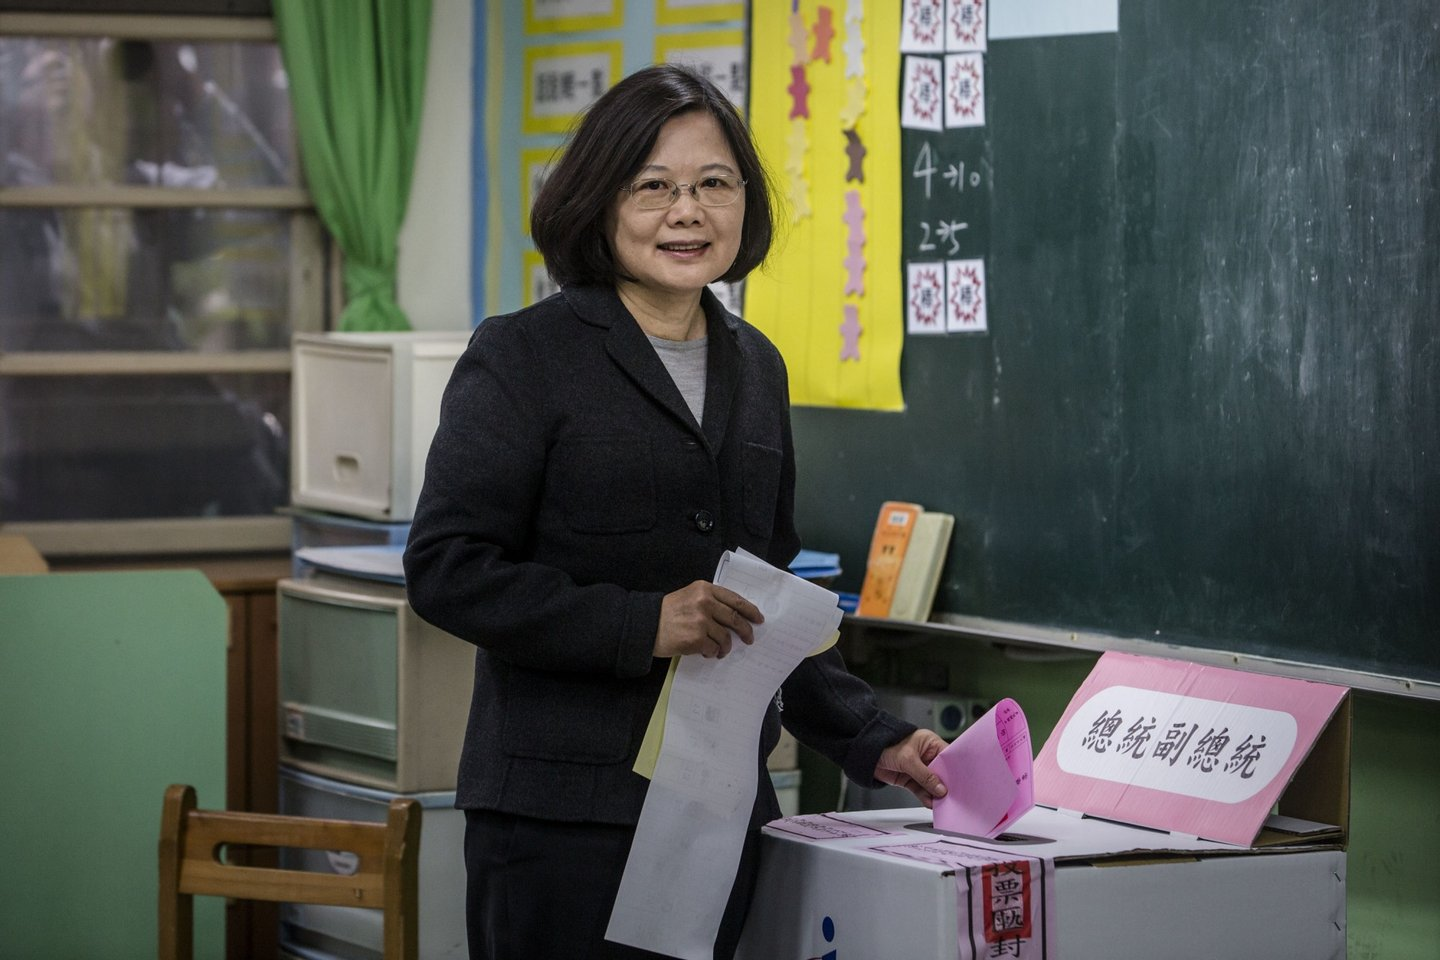 TAIPEI, TAIWAN - JANUARY 16: Democratic Progressive Party (DPP) presidential candidate Tsai Ing-wen, casts her ballot at a polling station on January 16, 2016 in Taipei, Taiwan. Voters in Taiwan are set to elect Tsai Ing-wen, the chairwoman of the opposition Democratic Progressive Party, to become the island's first female leader. (Photo by Ulet Ifansasti/Getty Images)